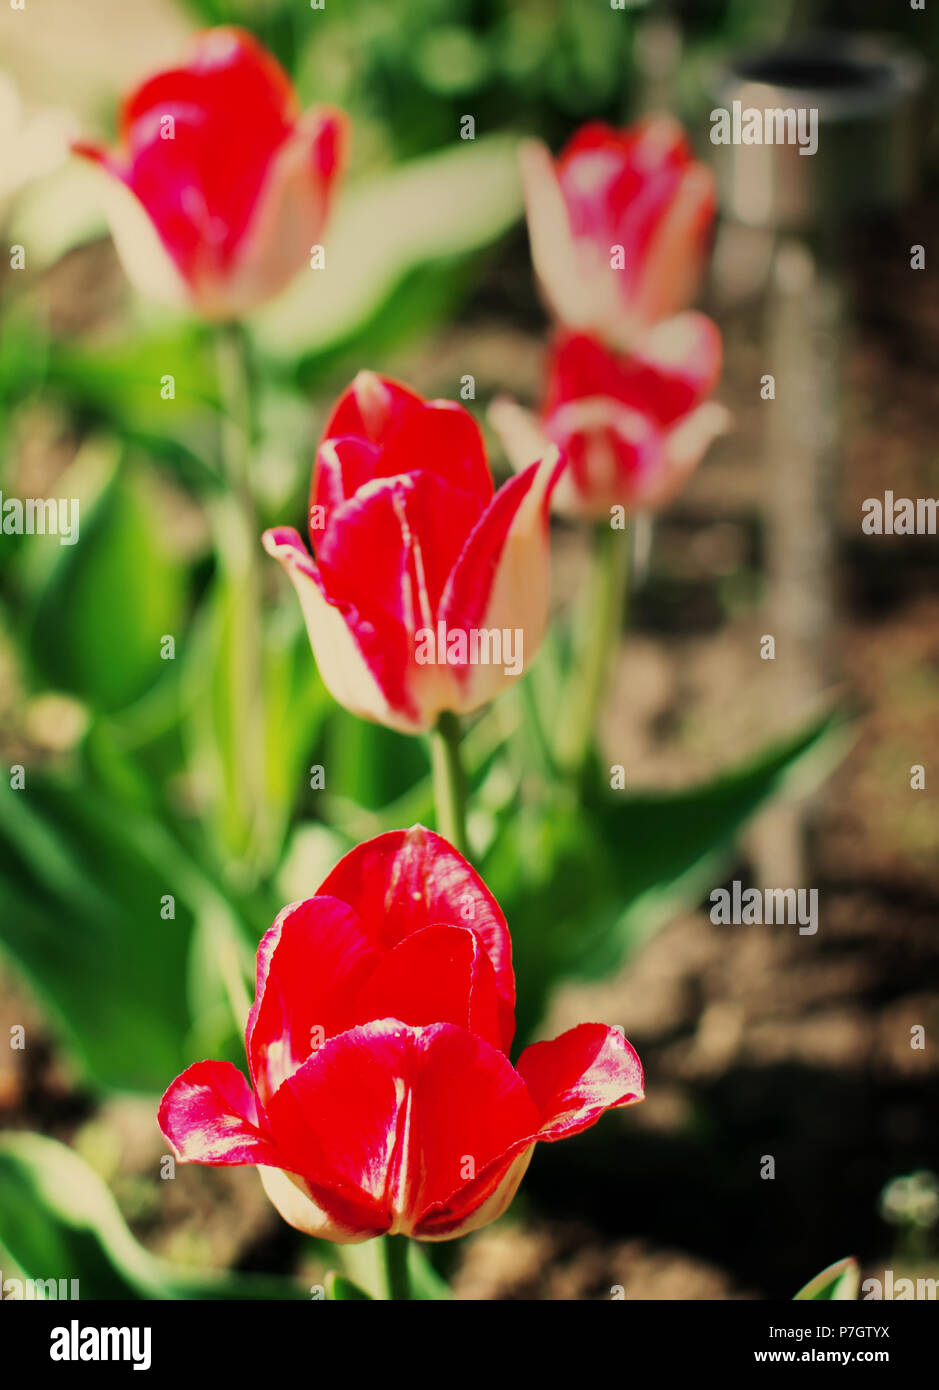 Vibrant two-tone red Greigii tulips with their variegated foliage in the spring garden under morning spring sun. - Stock Image